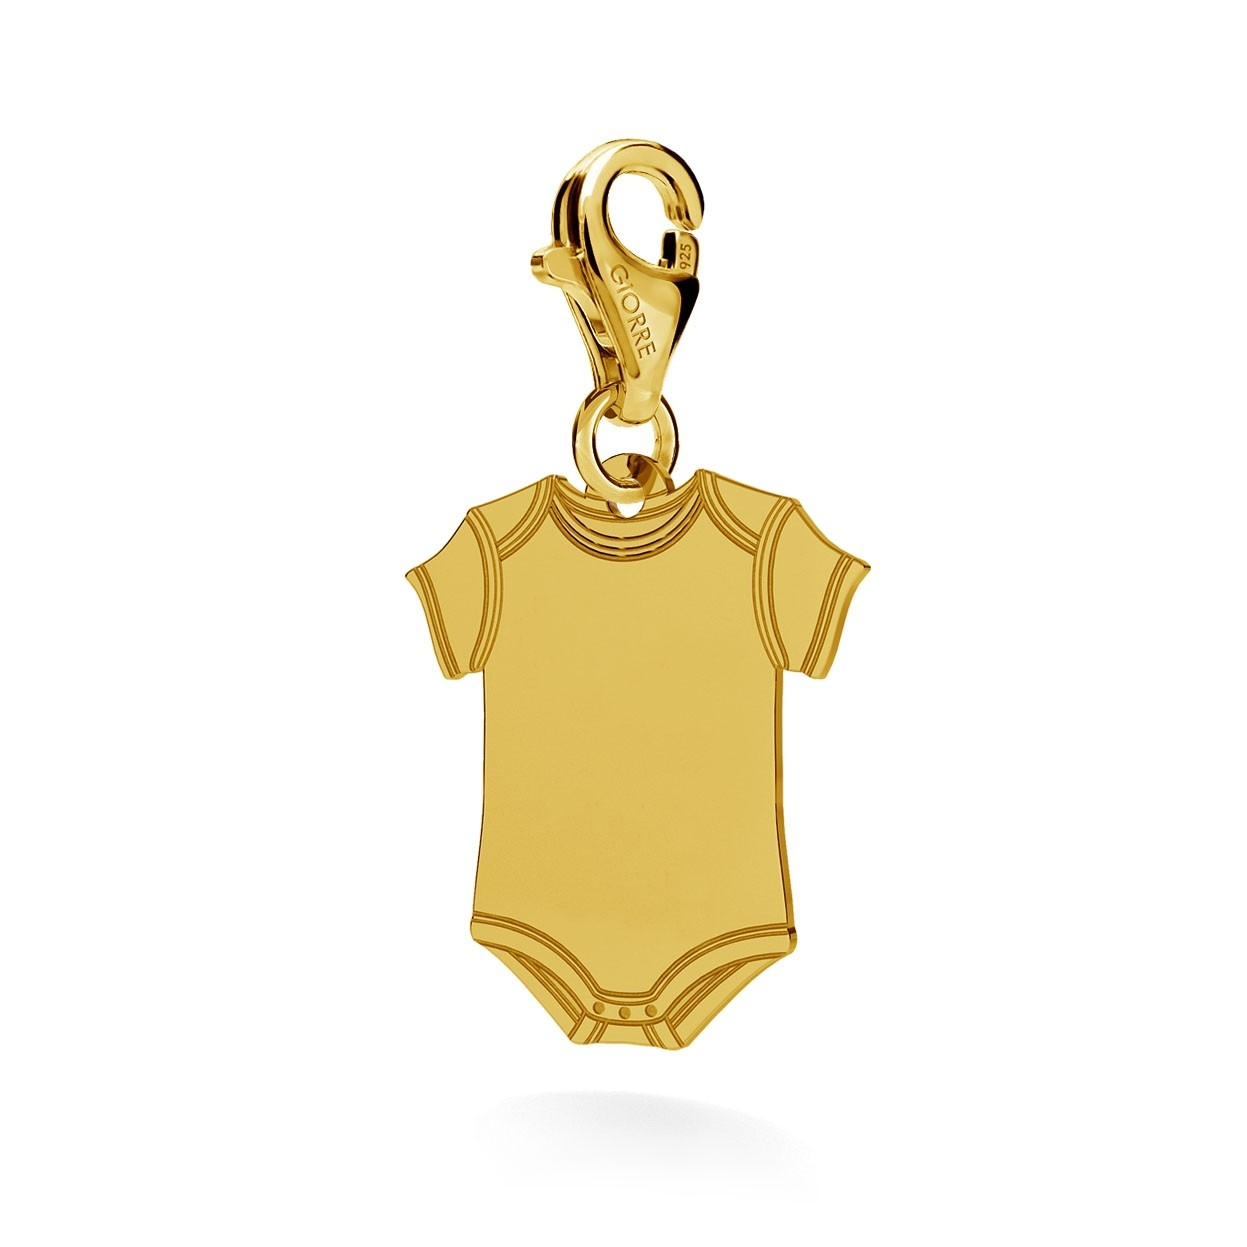 CHARM 91, BABY ROMPERS,  SILVER 925,  RHODIUM OR GOLD PLATED